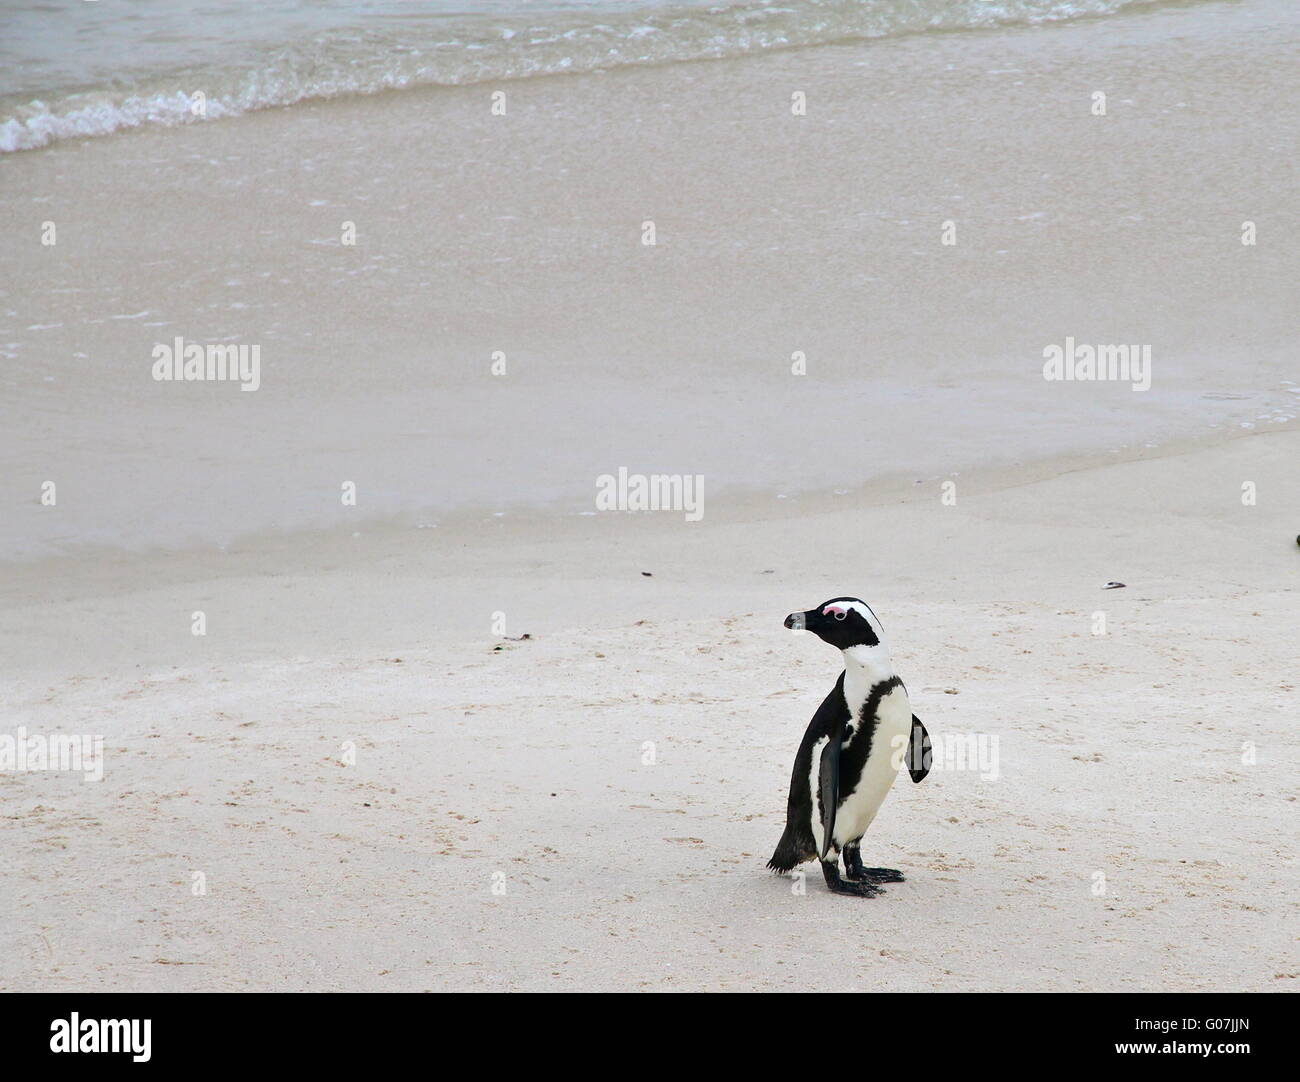 Penguin in South Africa - Stock Image